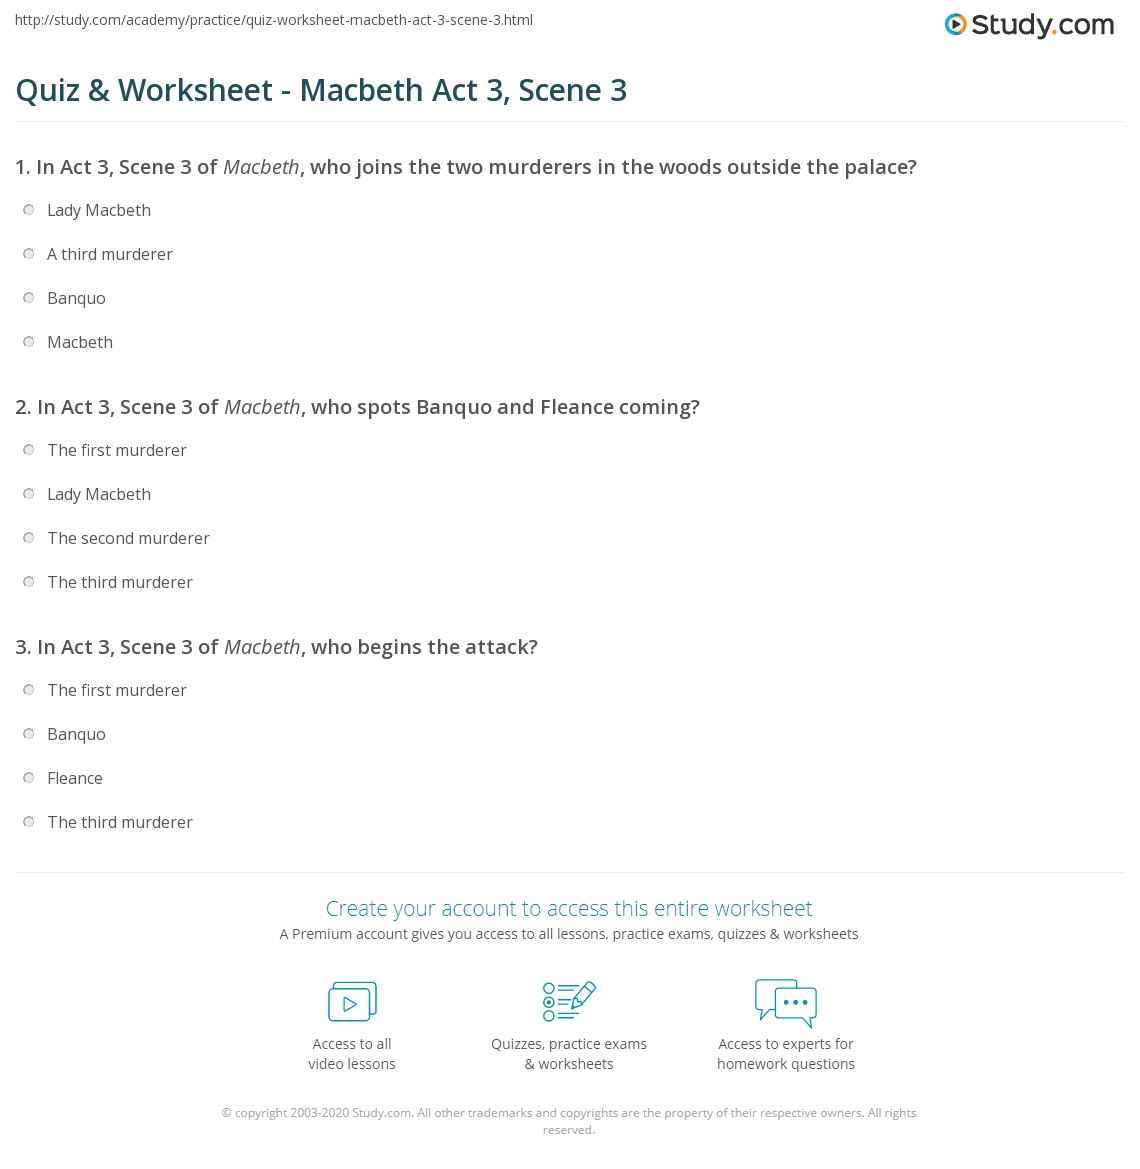 quiz worksheet macbeth act 3 scene 3 com print macbeth act 3 scene 3 summary quotes worksheet